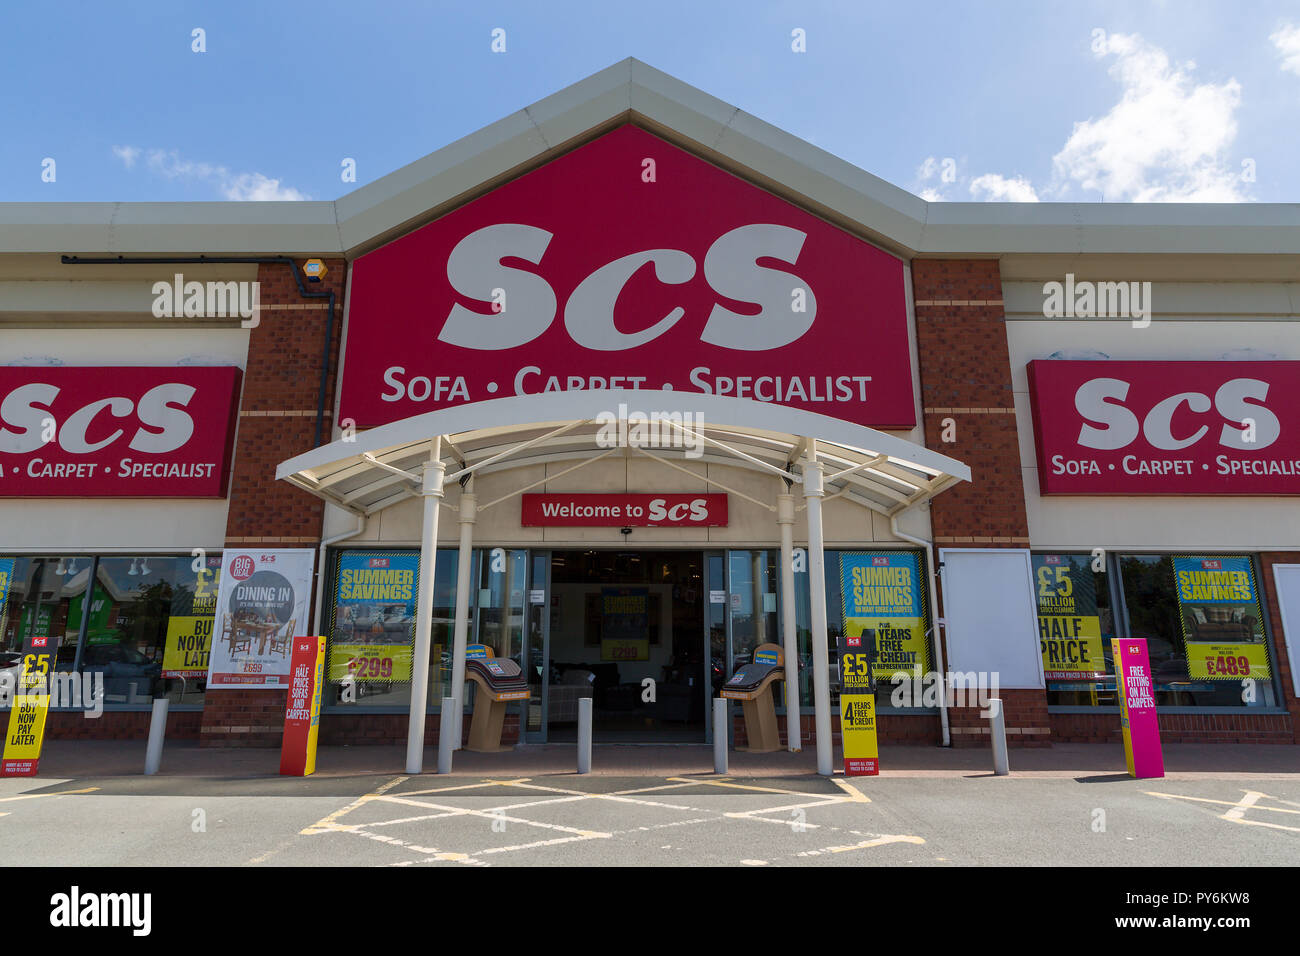 Warrington branch of SCS the home furnishings retailer situated on Riverside Retail Park - Stock Image